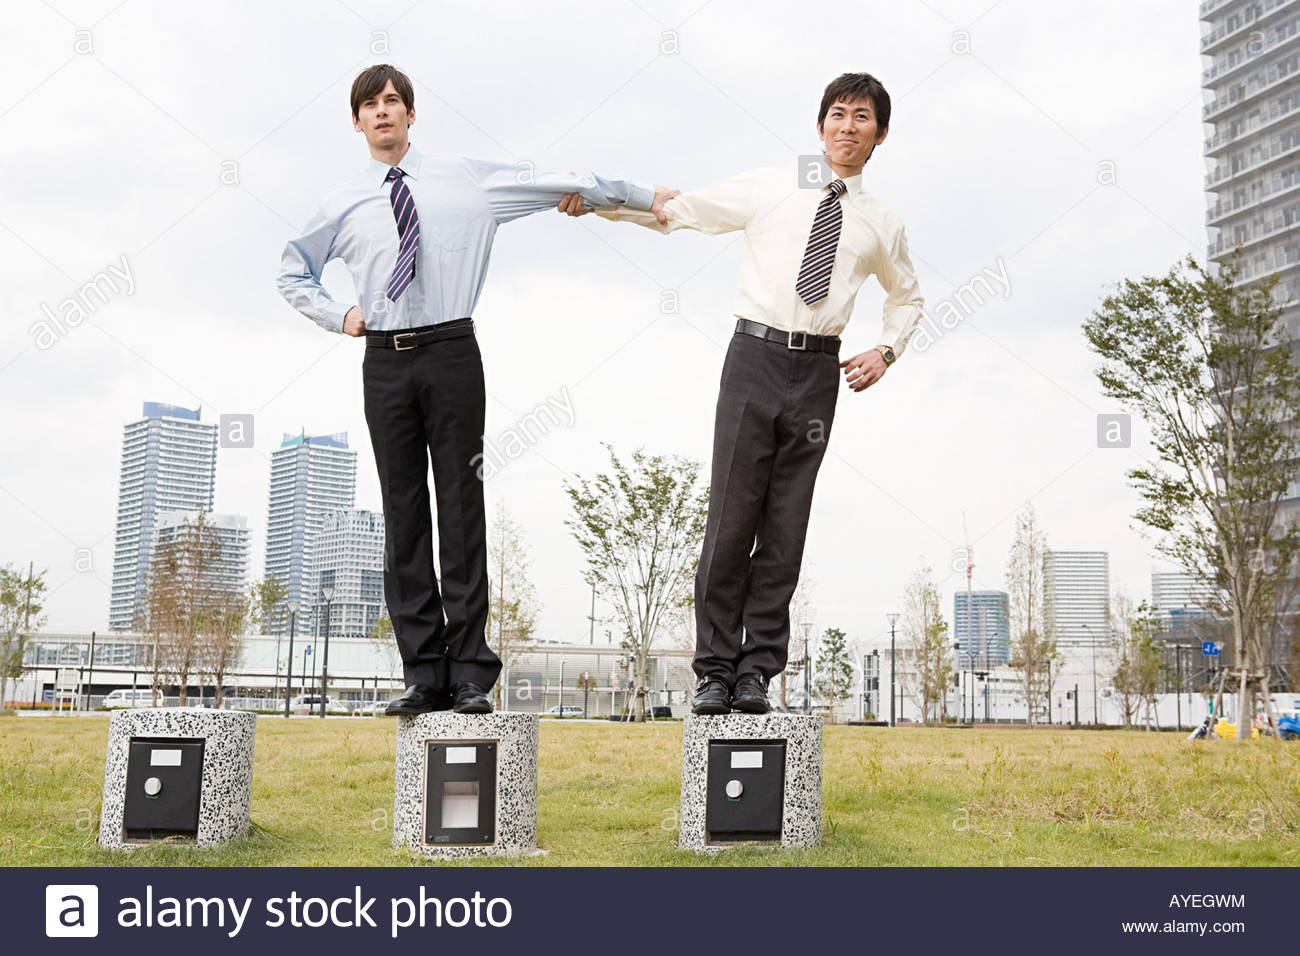 Businessmen holding each others arms - Stock Image